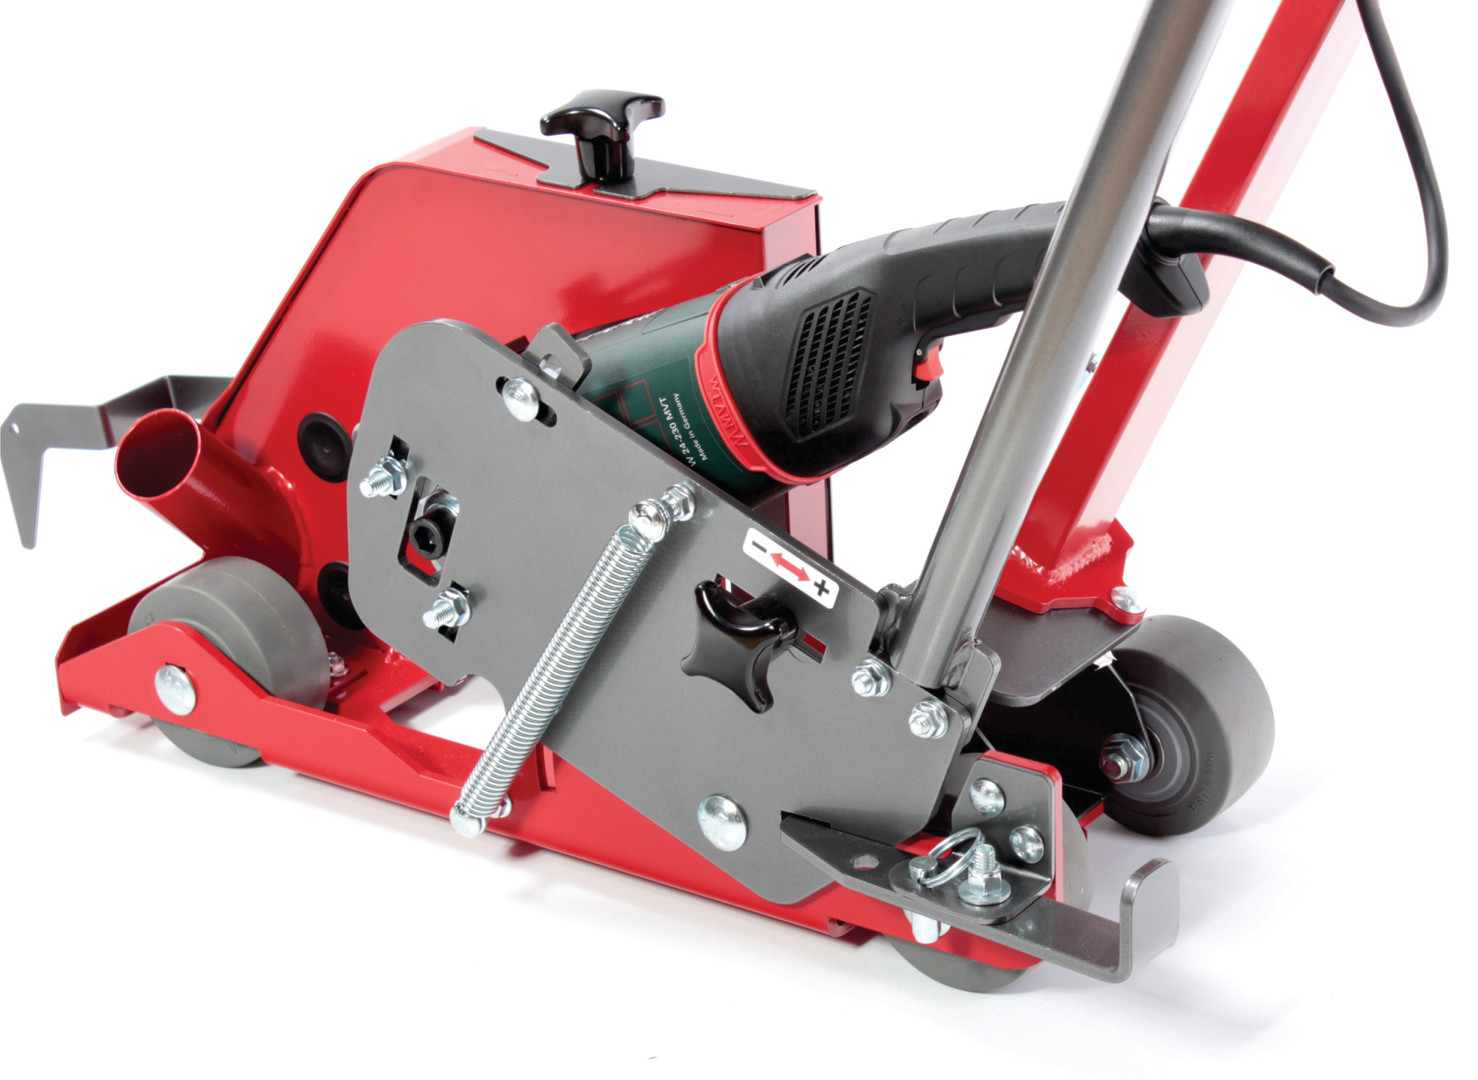 GCT-10 joint clean out saw